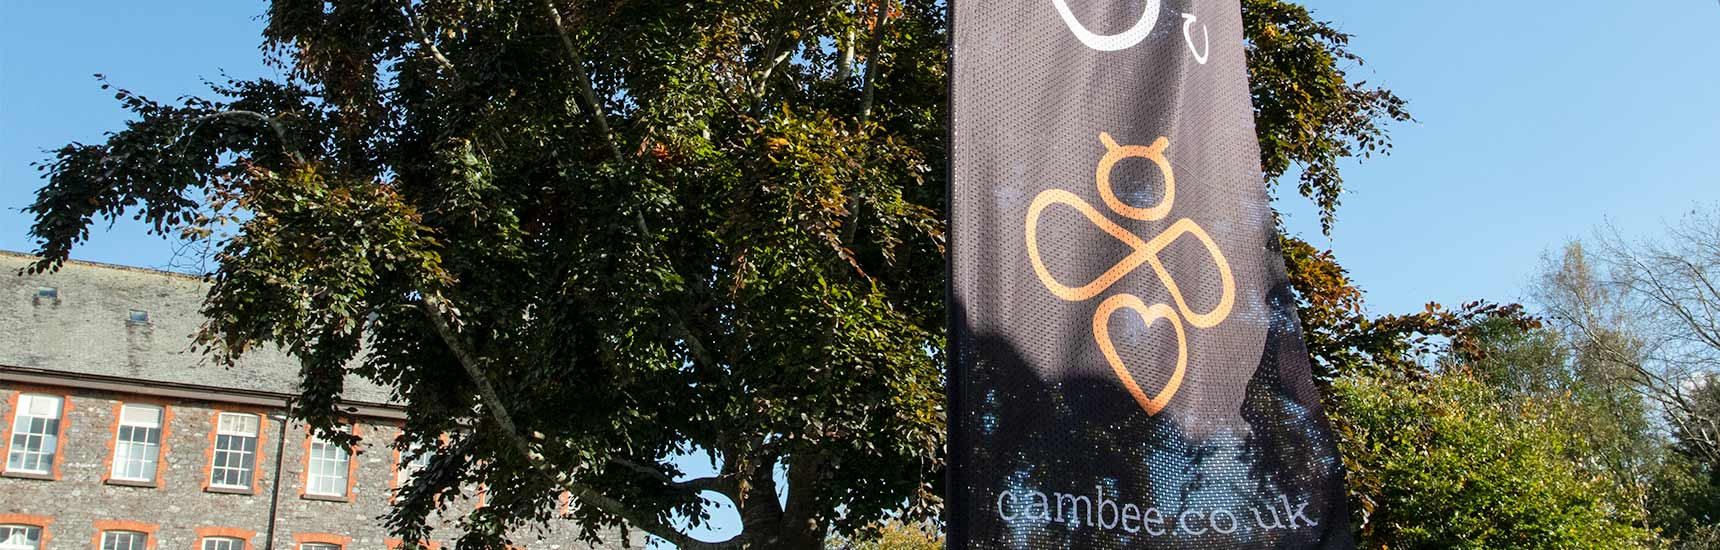 Cambee flag outside with branding